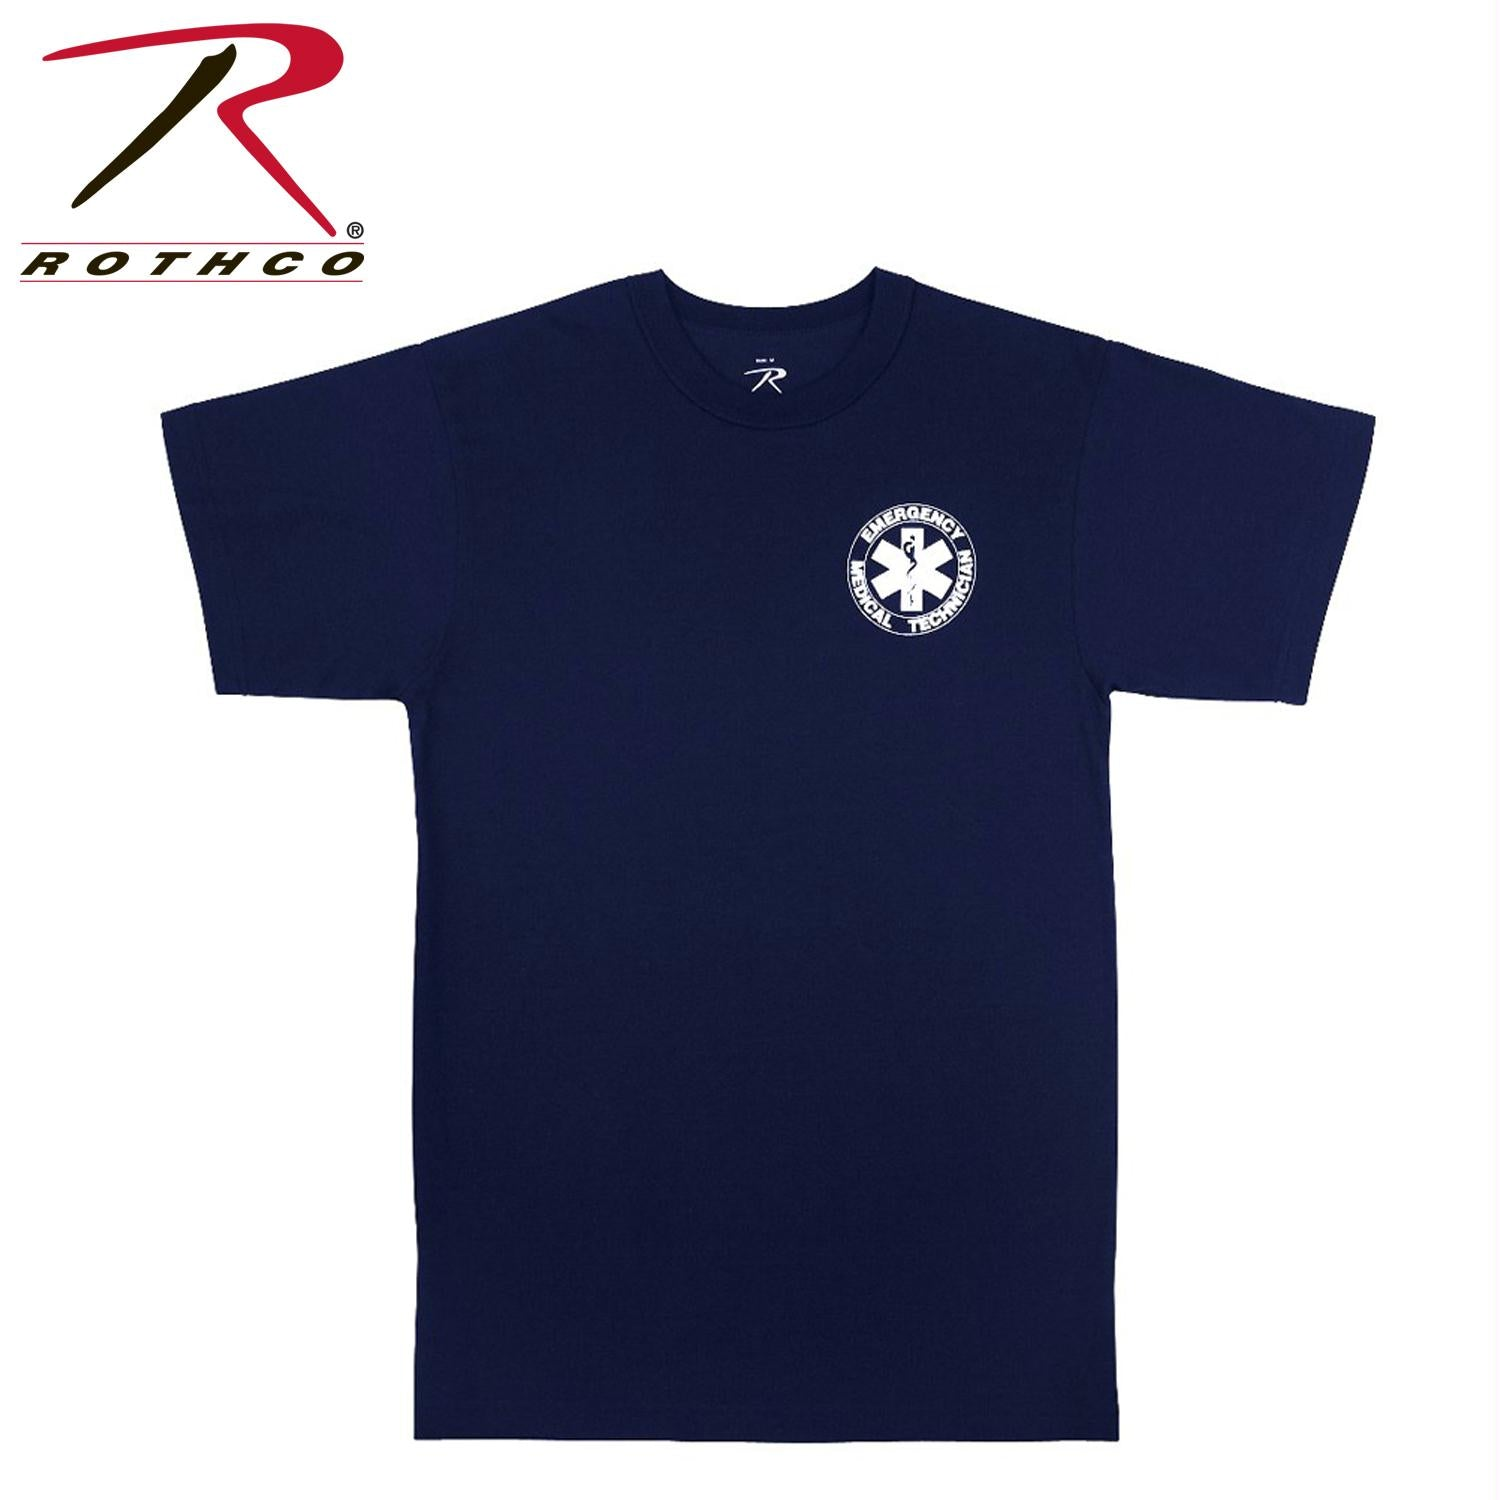 Rothco 2-Sided EMT T-Shirt - Navy Blue / 3XL